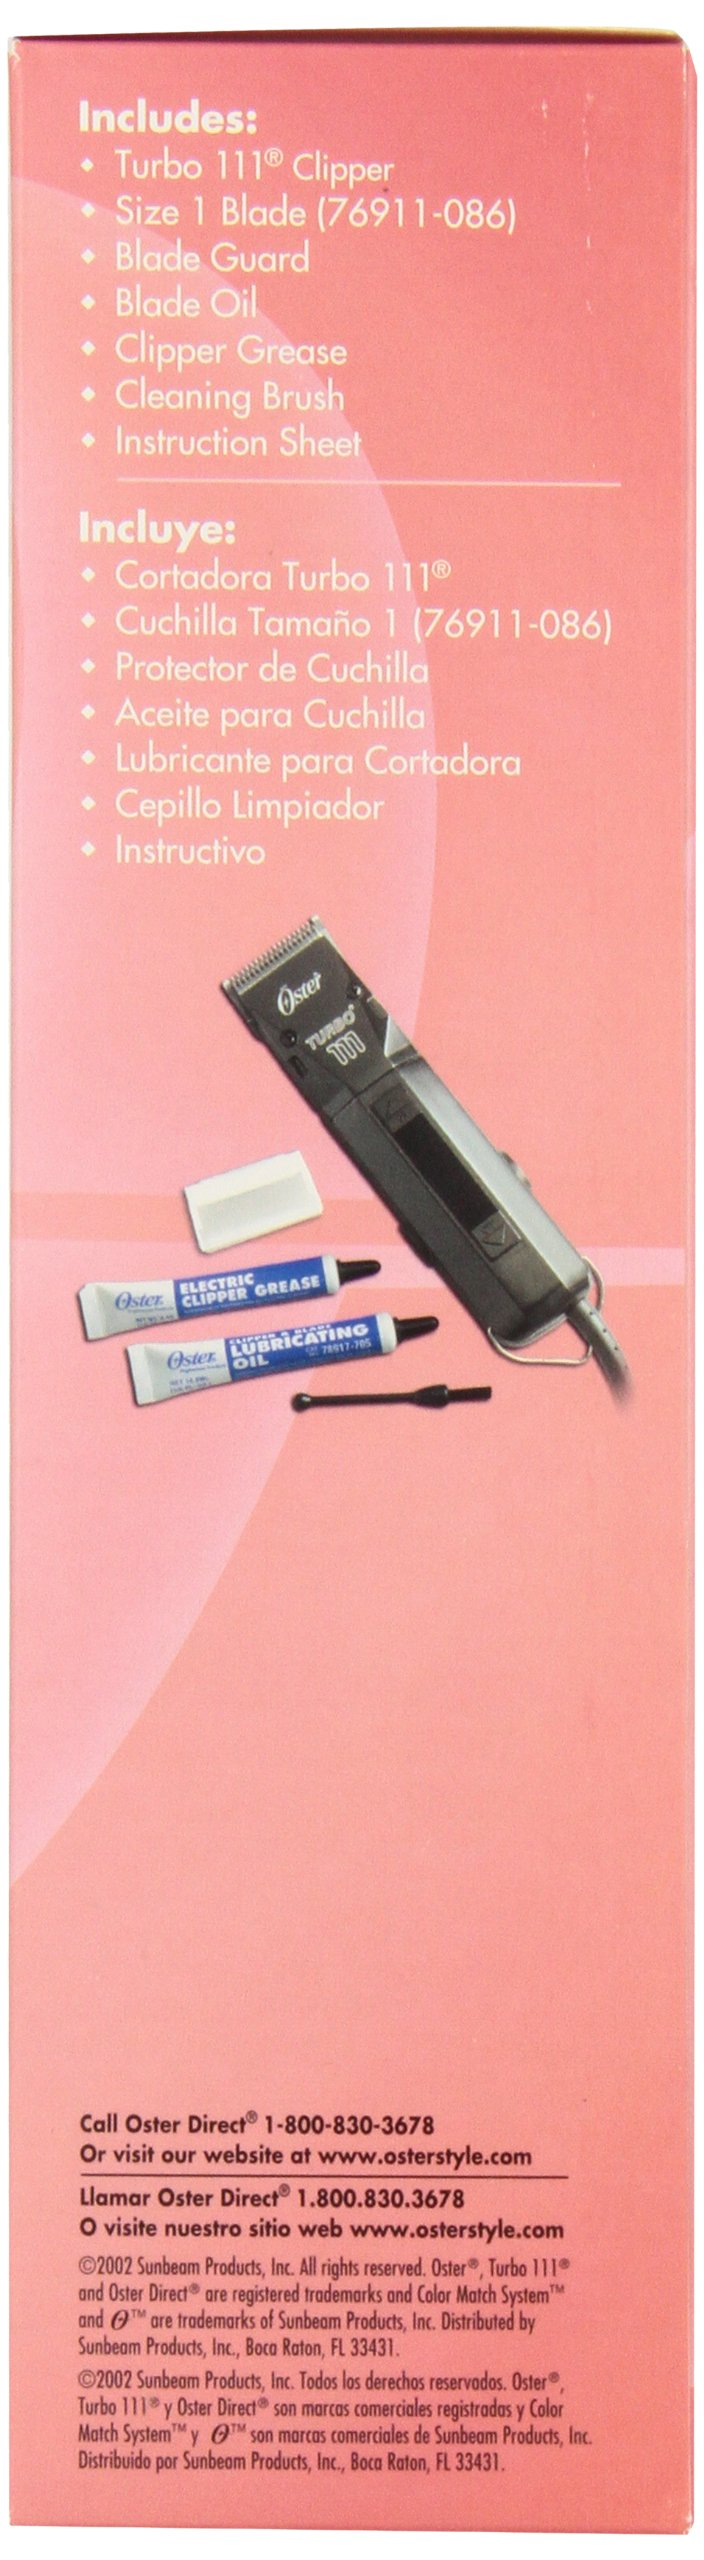 Oster Professional Turbo 111 Hair Clipper by Oster (Image #2)